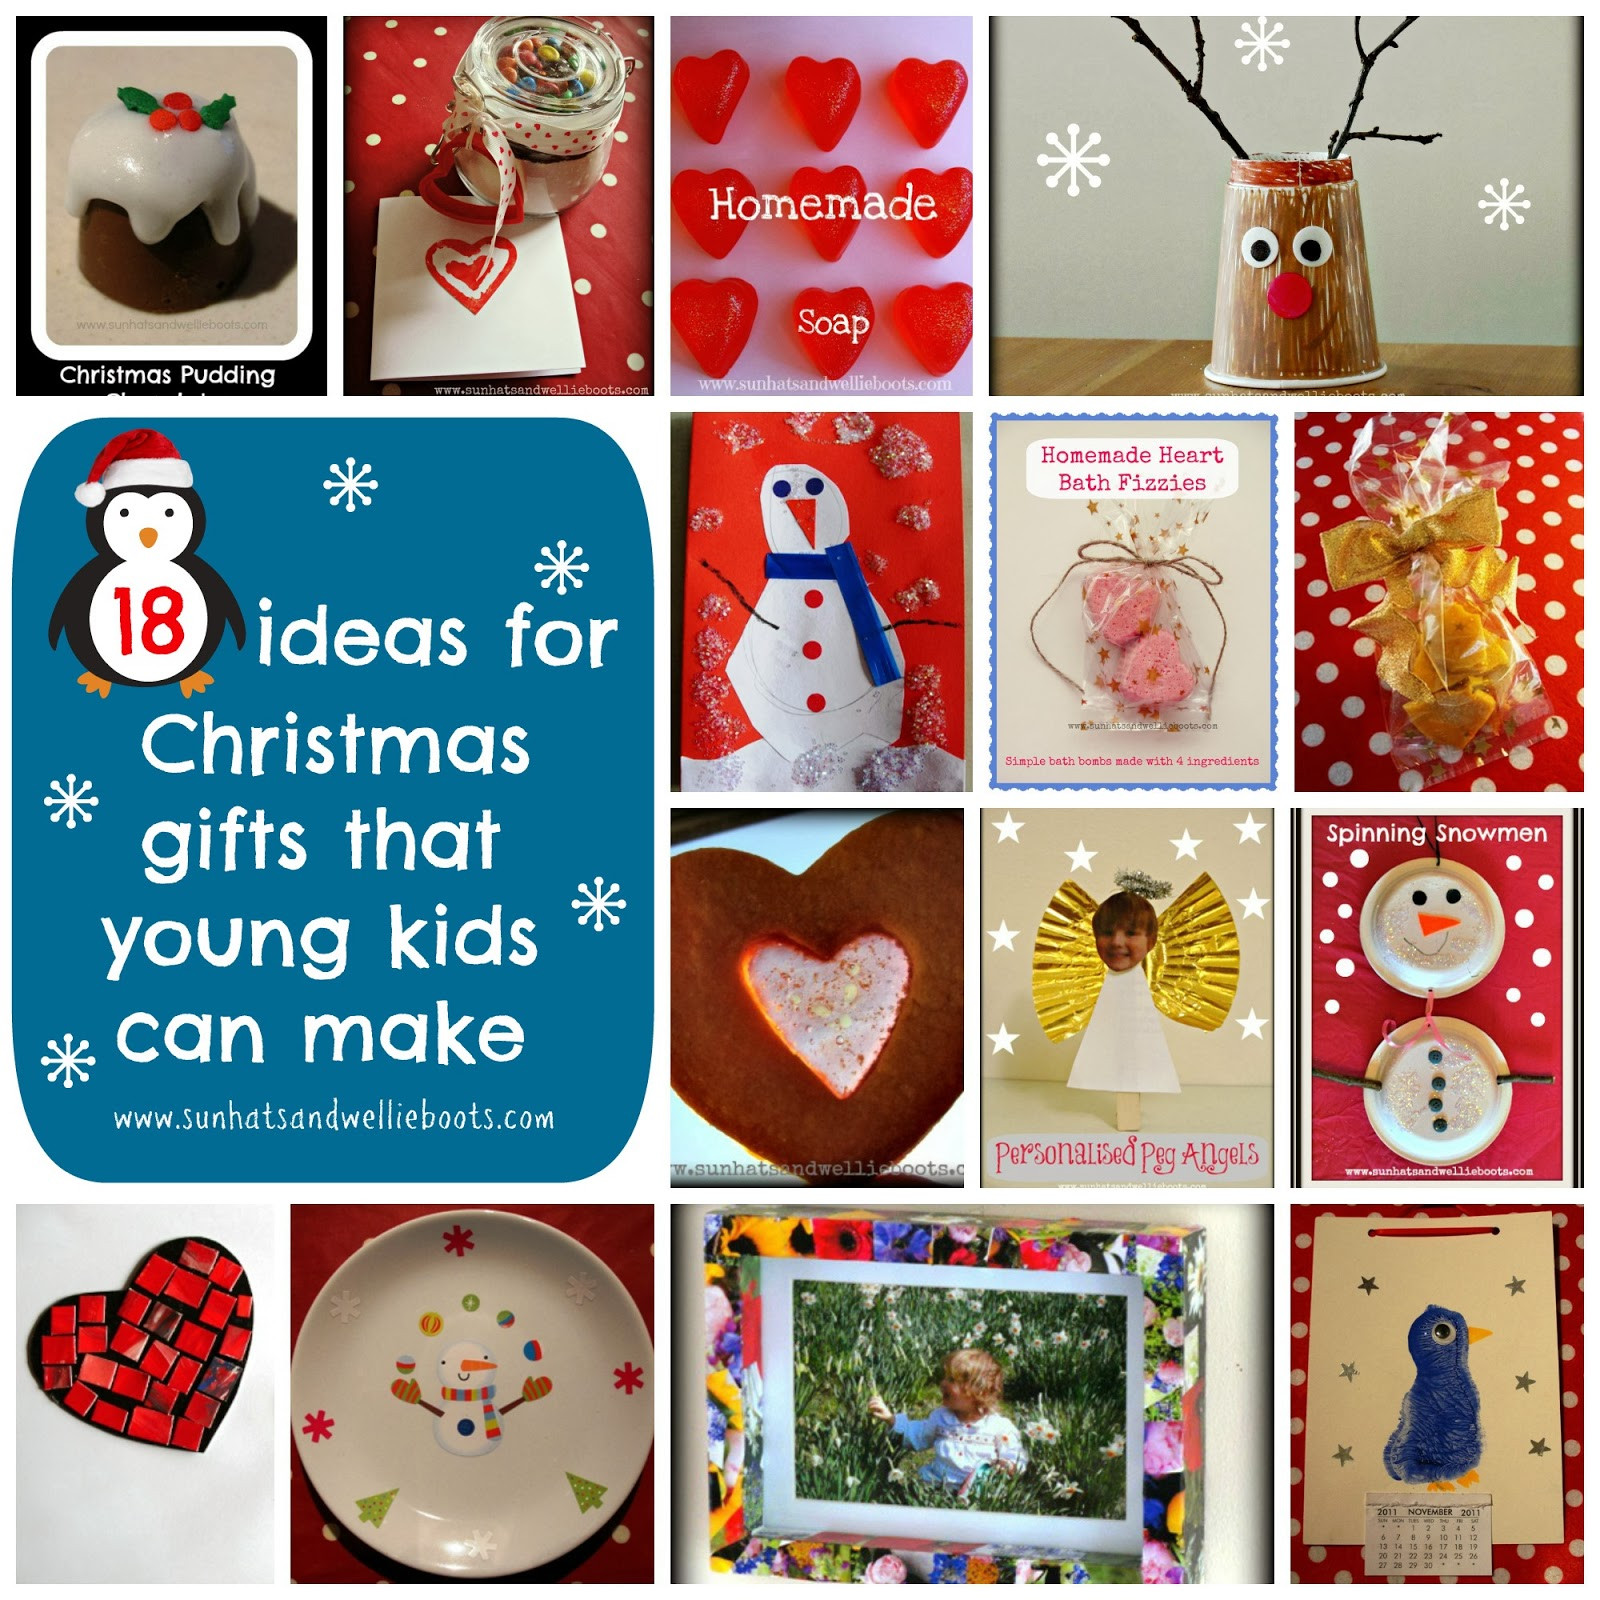 Best ideas about Homemade Christmas Gifts For Kids To Make . Save or Pin Sun Hats & Wellie Boots 18 Homemade Christmas Gifts That Now.